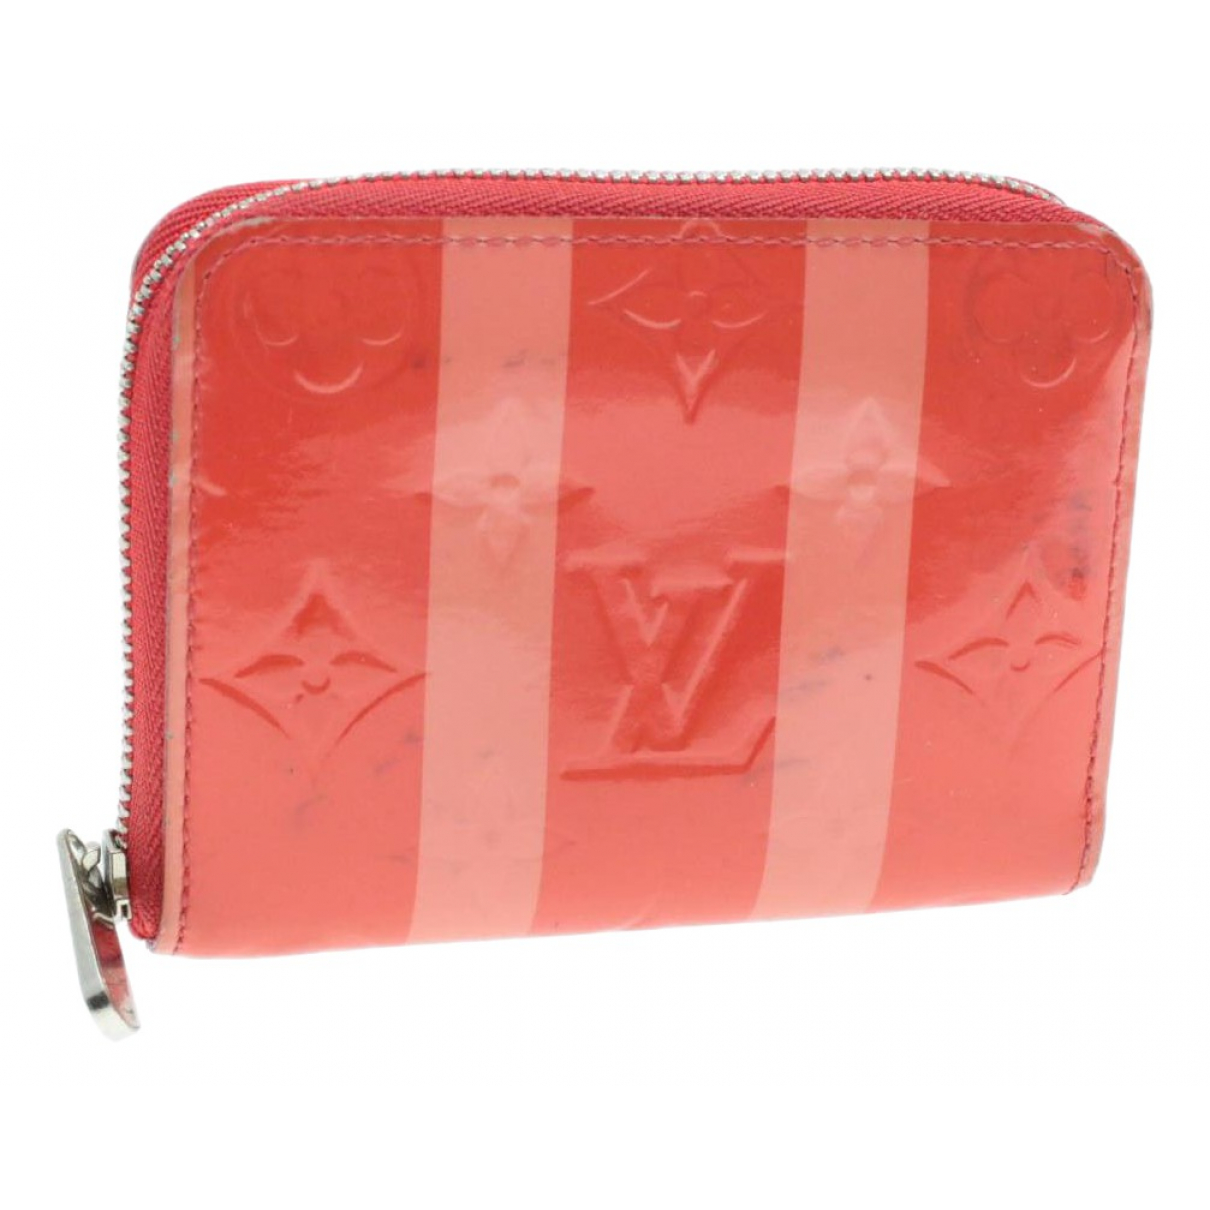 Cartera Zippy de Charol Louis Vuitton